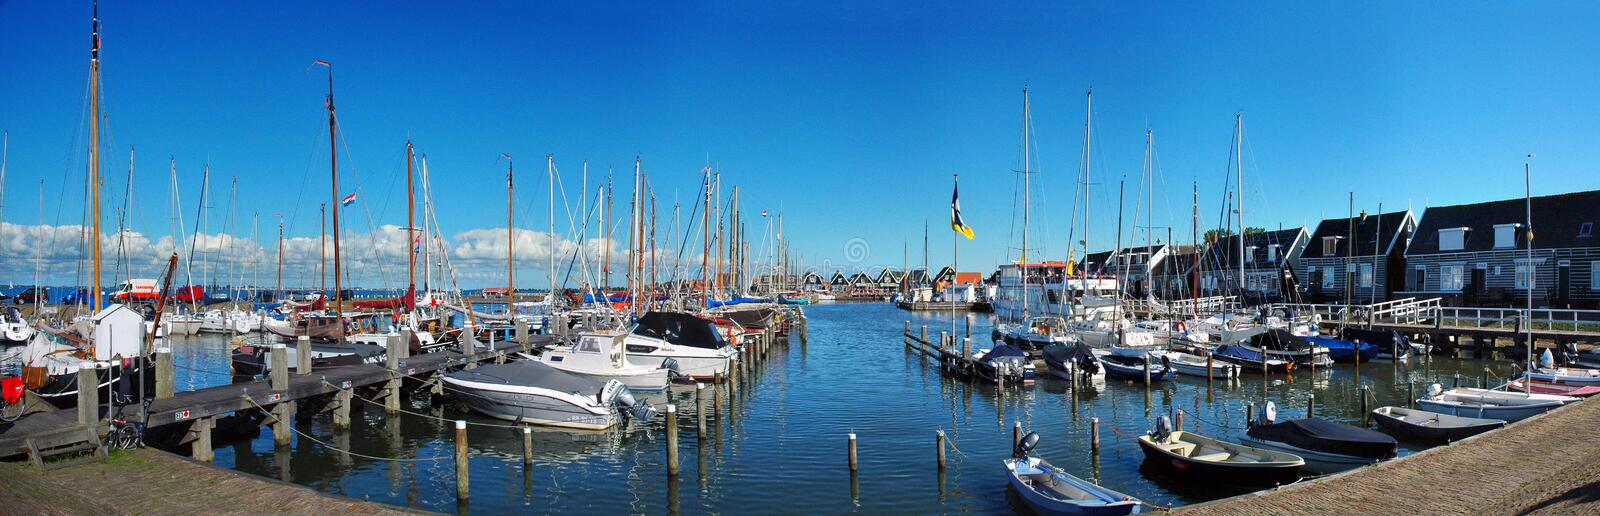 Place of peace, Marine of Marken, Netherlands. For some time during the later 19th and early 20th centuries, Marken and its inhabitants were the focus of royalty free stock photography